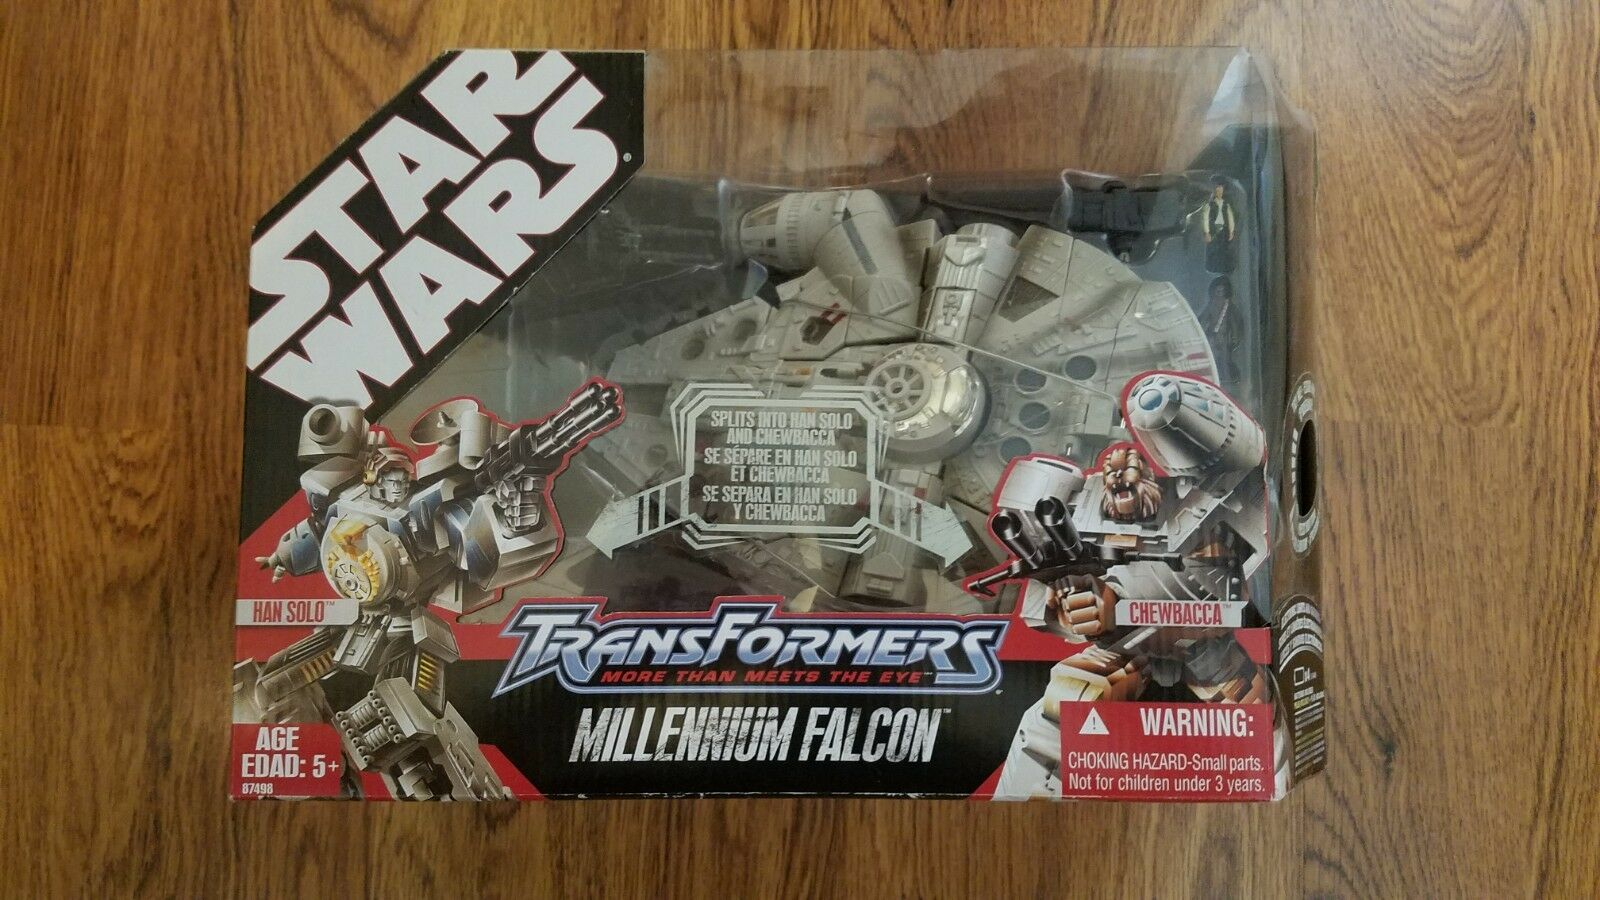 TRANSFORMERS Star Wars MILLENNIUM FALCON Han Solo Chewbacca Action Figures RARE